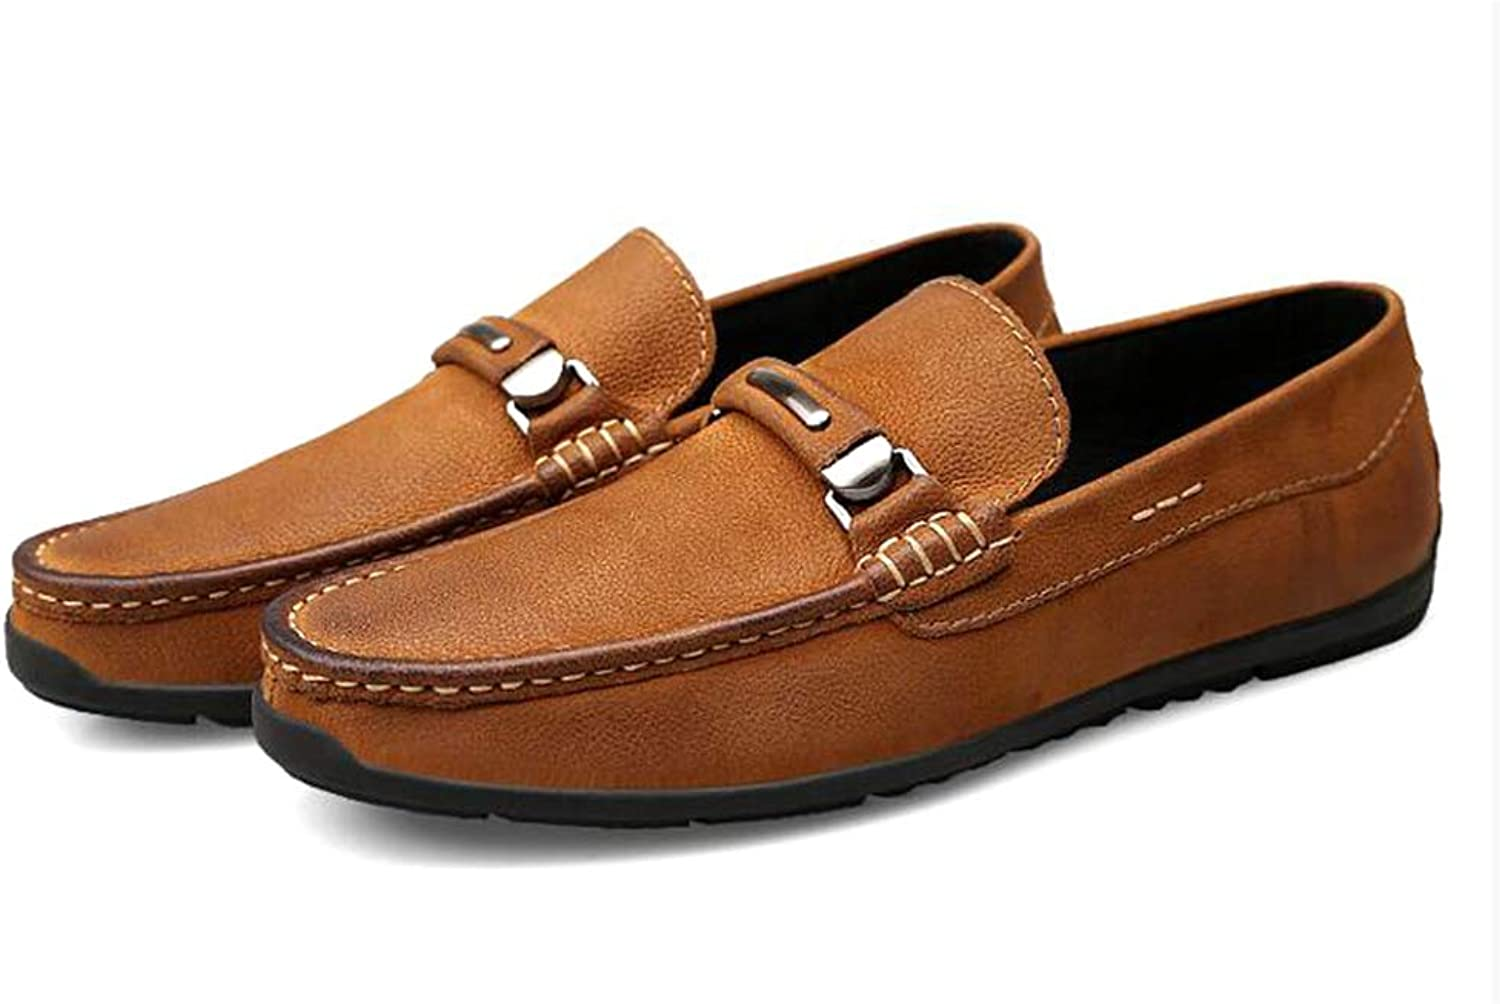 Y-H Men's shoes, Spring new Flat Casual shoes, Slip-Ons Driving shoes,Loafers & Slip-Ons Lazy shoes Formal Business shoes,Brown,38